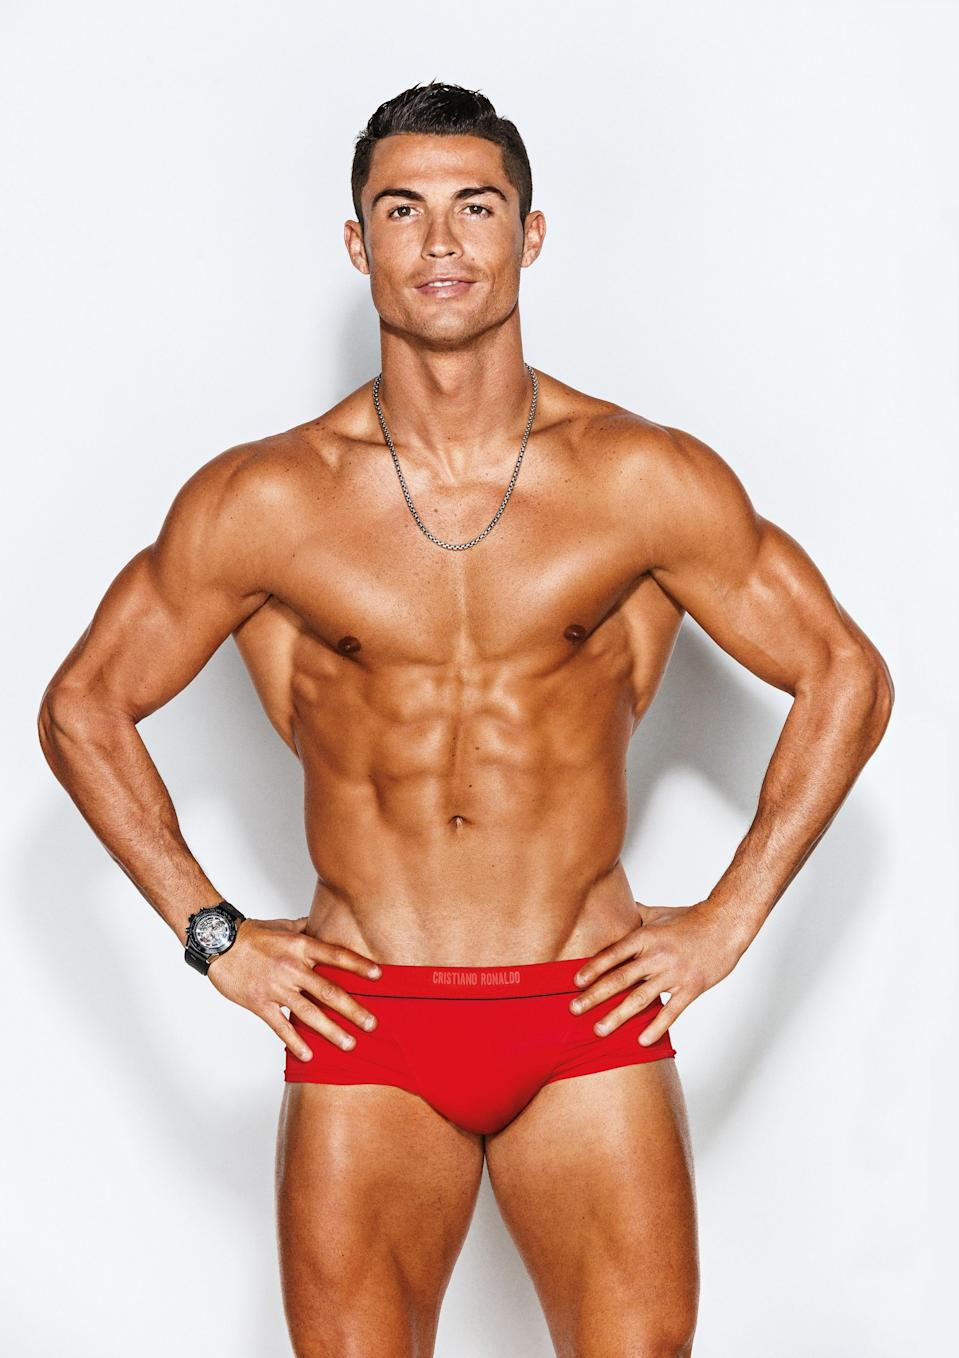 Every one of your hard-earned Ronaldo-level abs.